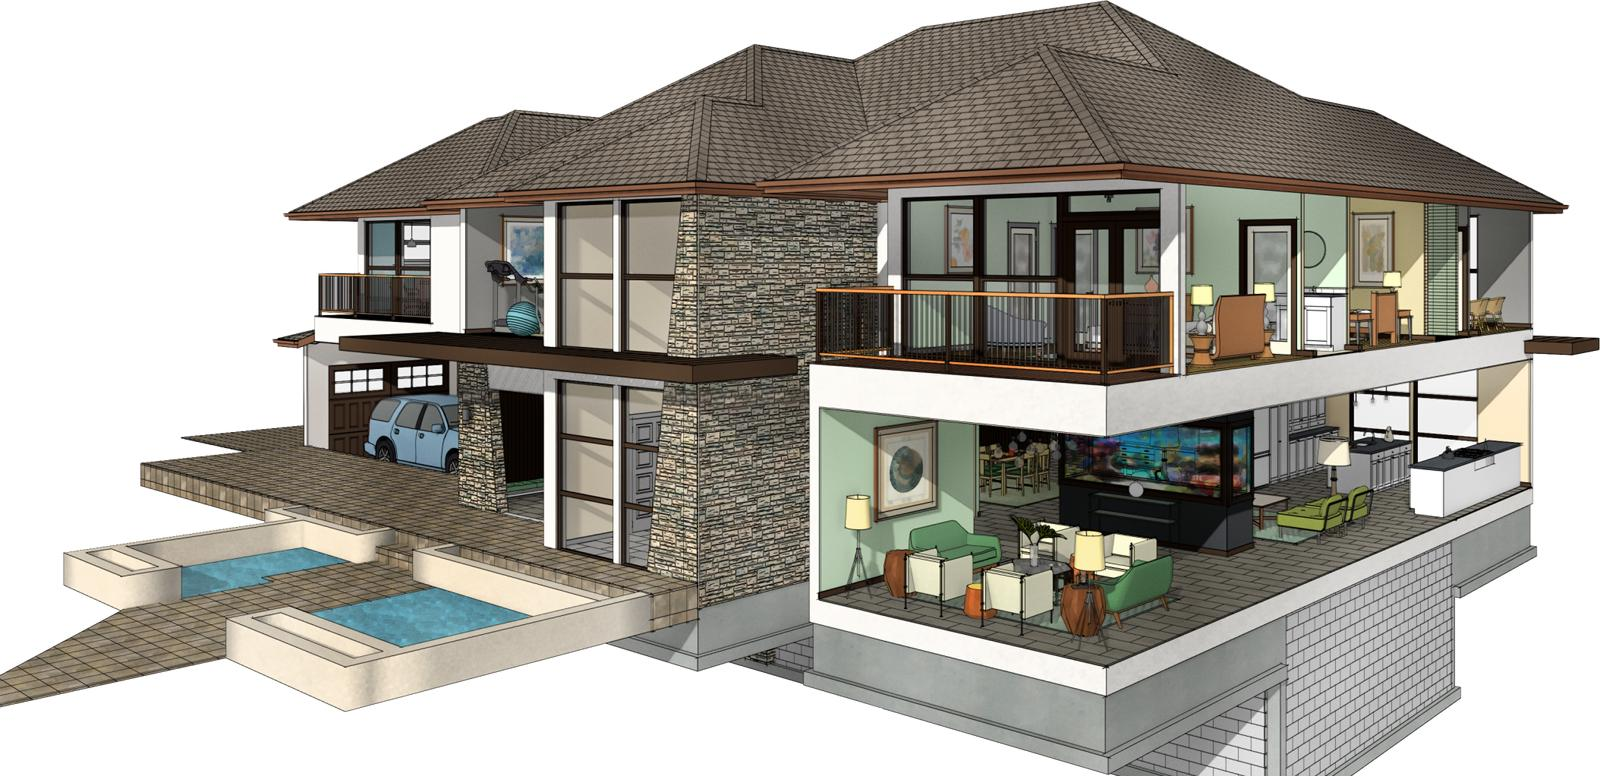 Home Architecture Design Software remarkable best home remodeling software images design inspiration Example Home Design By Chief Architect Software